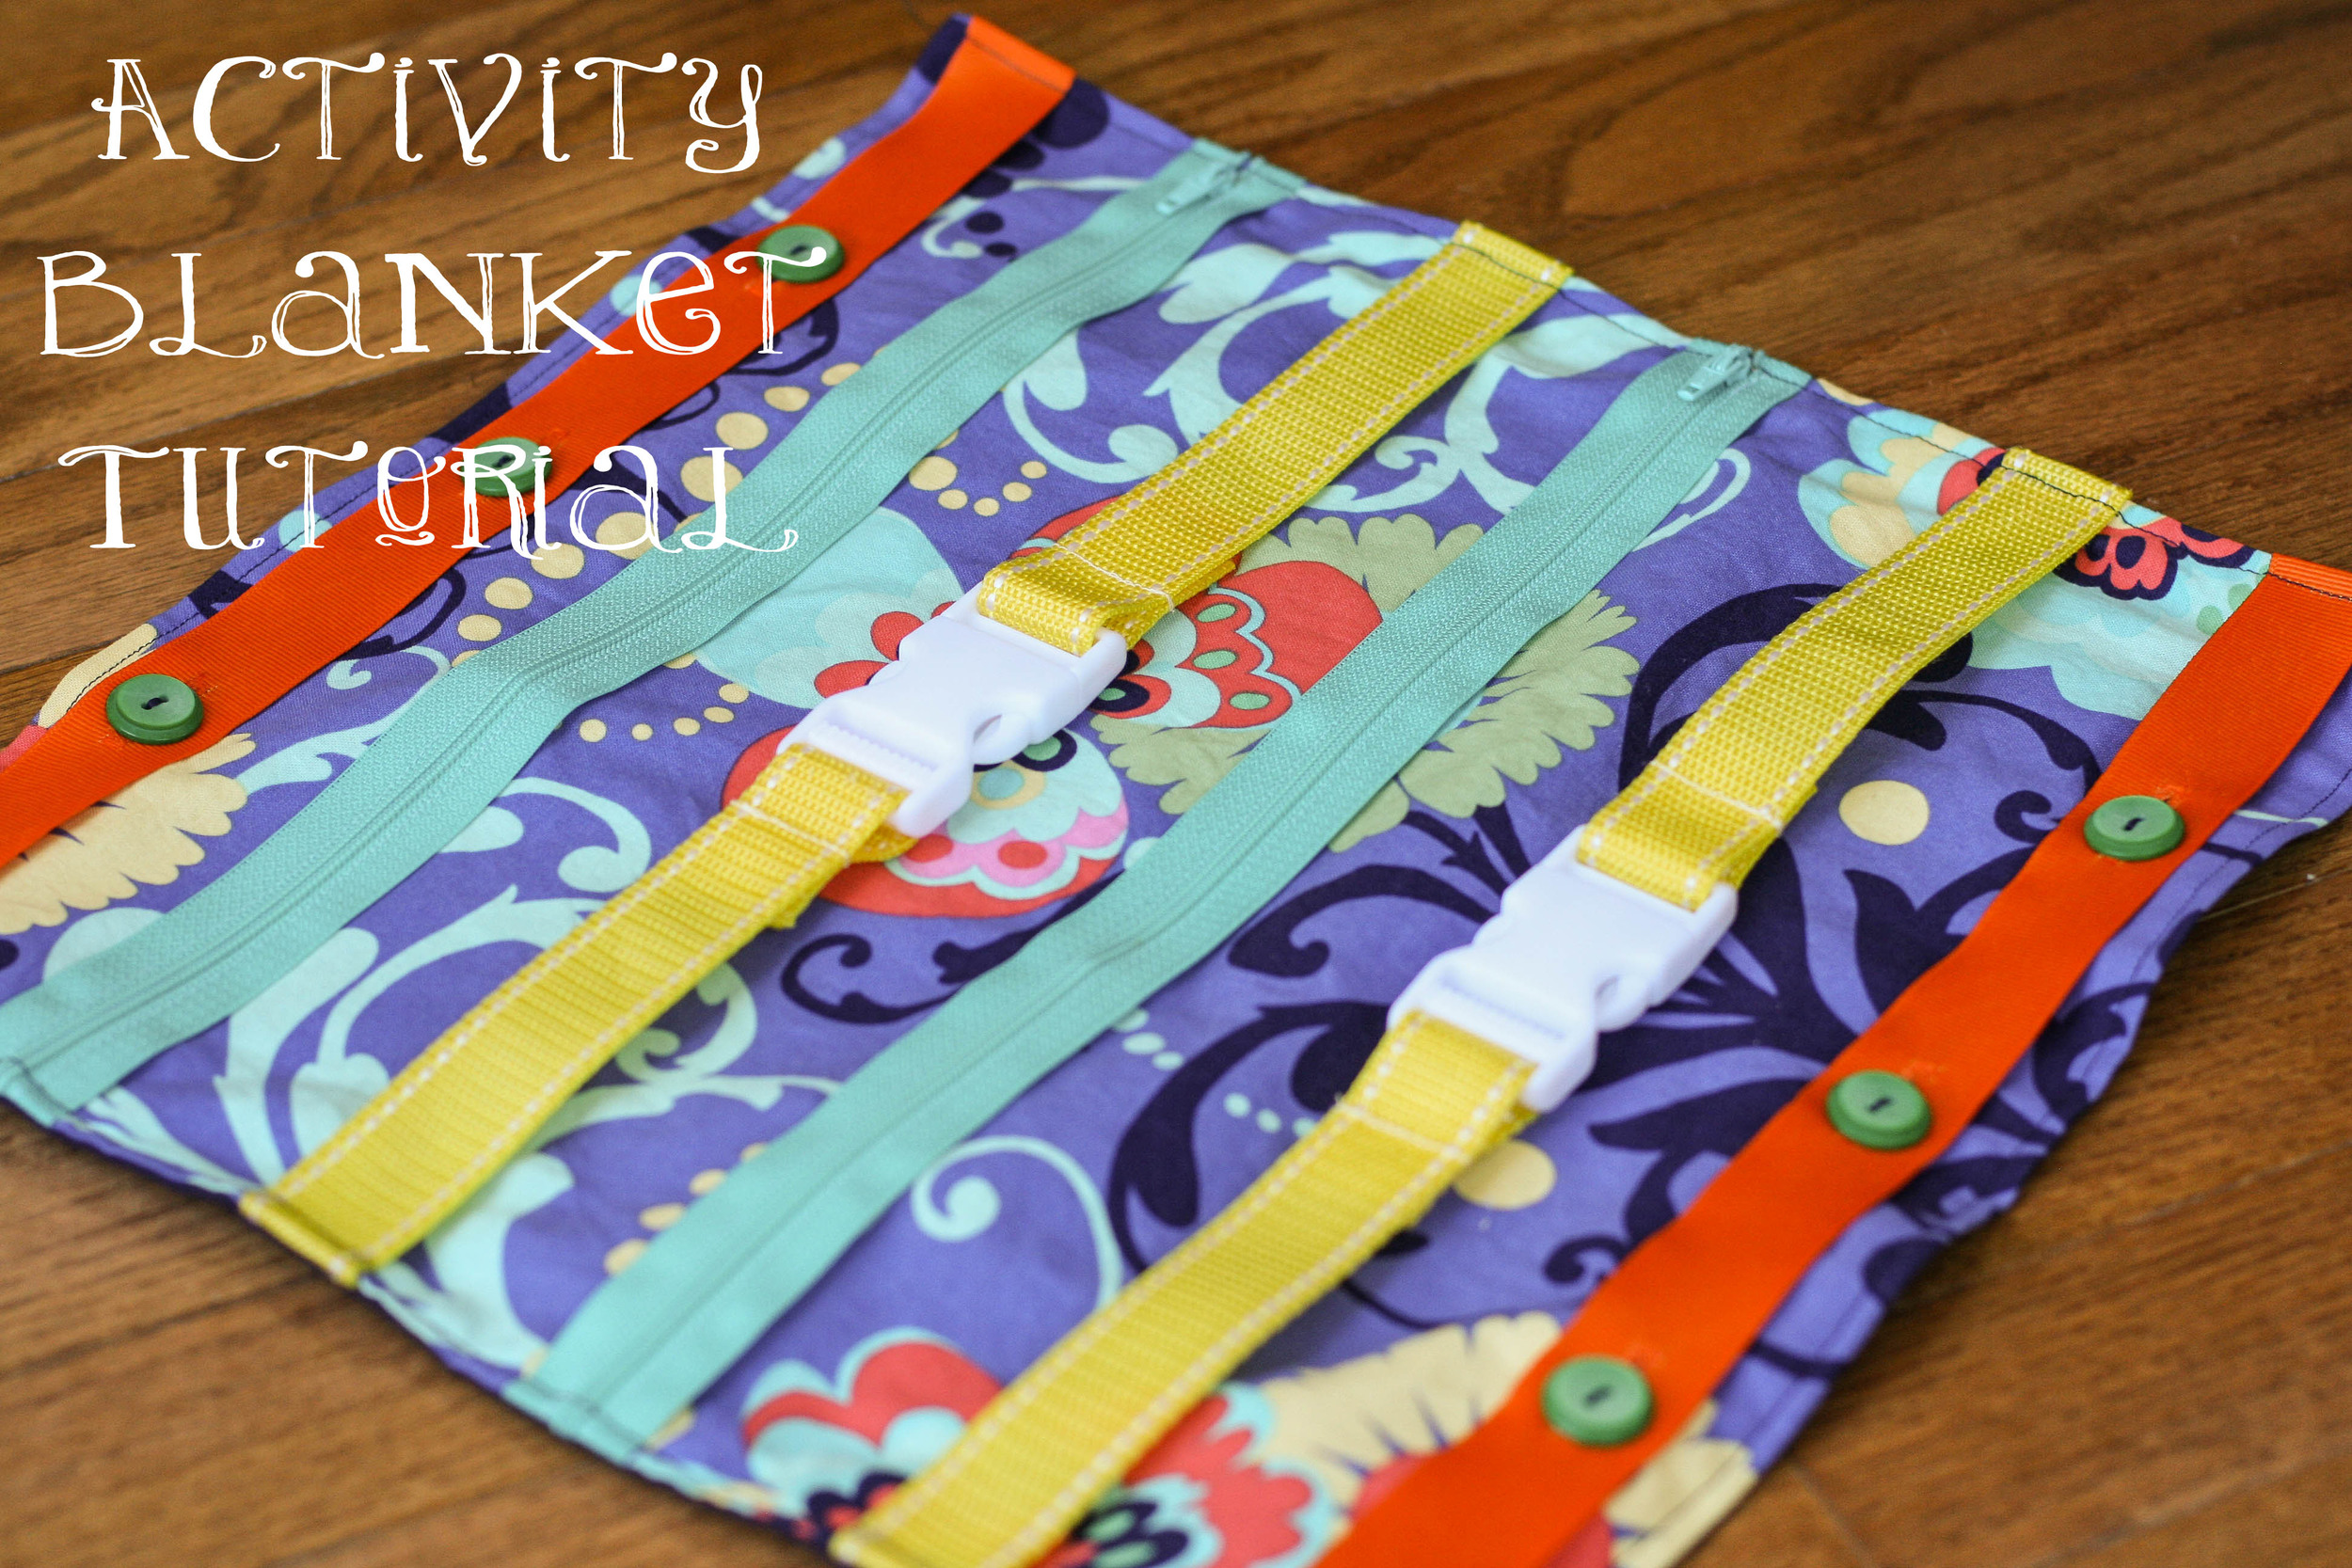 activity blanket tutorial